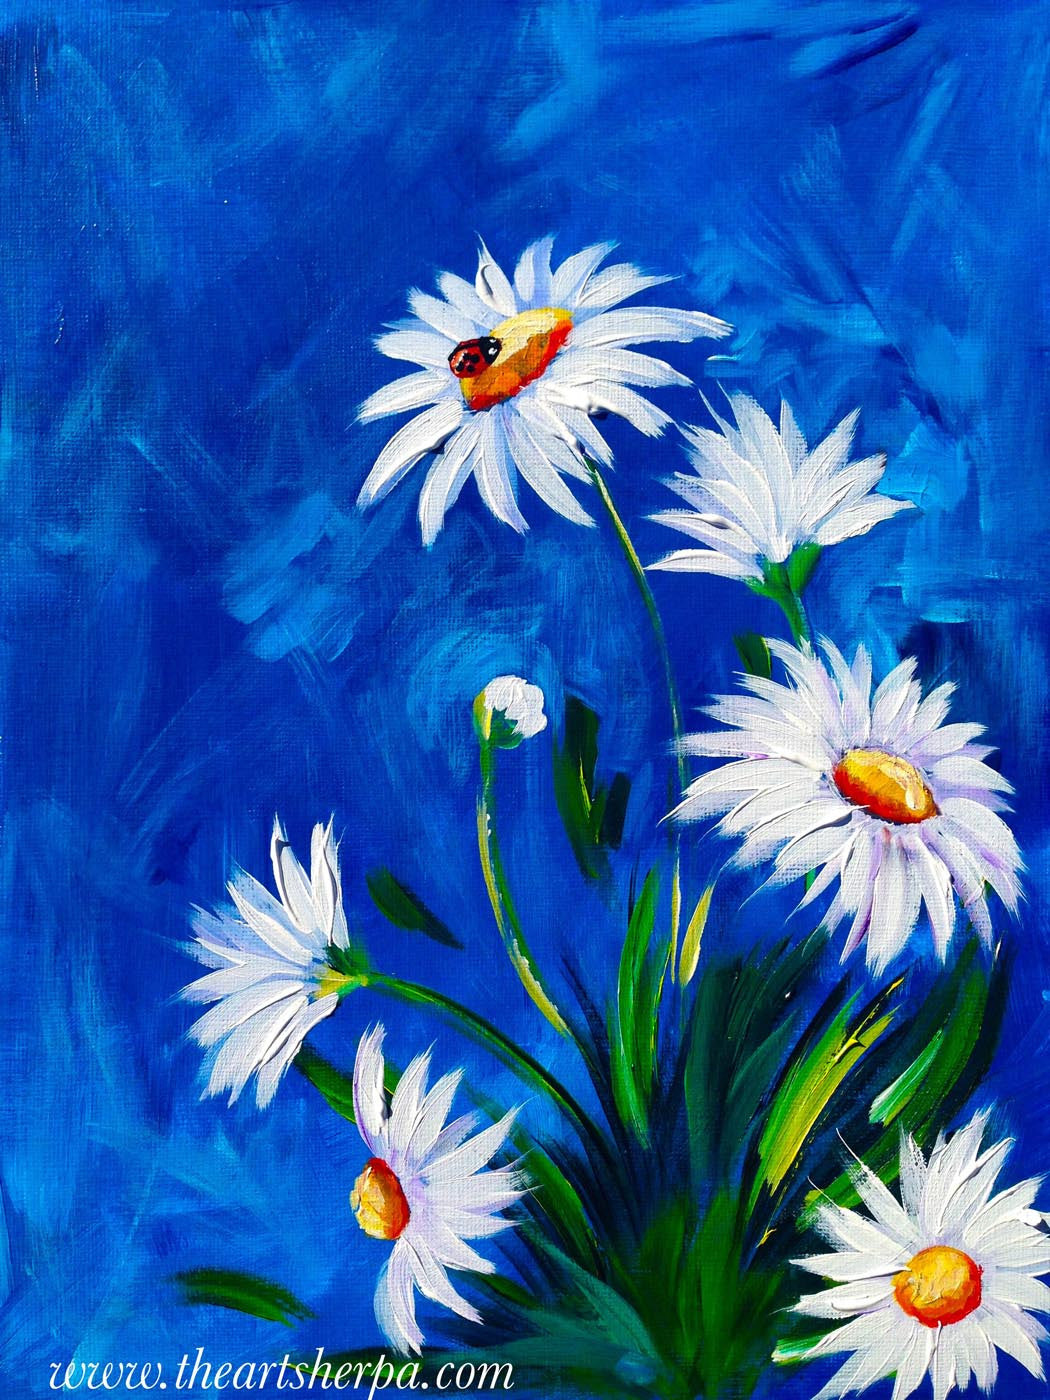 Oil painting white flowers with blue background large art prints oil painting white flowers with blue background large art prints mightylinksfo